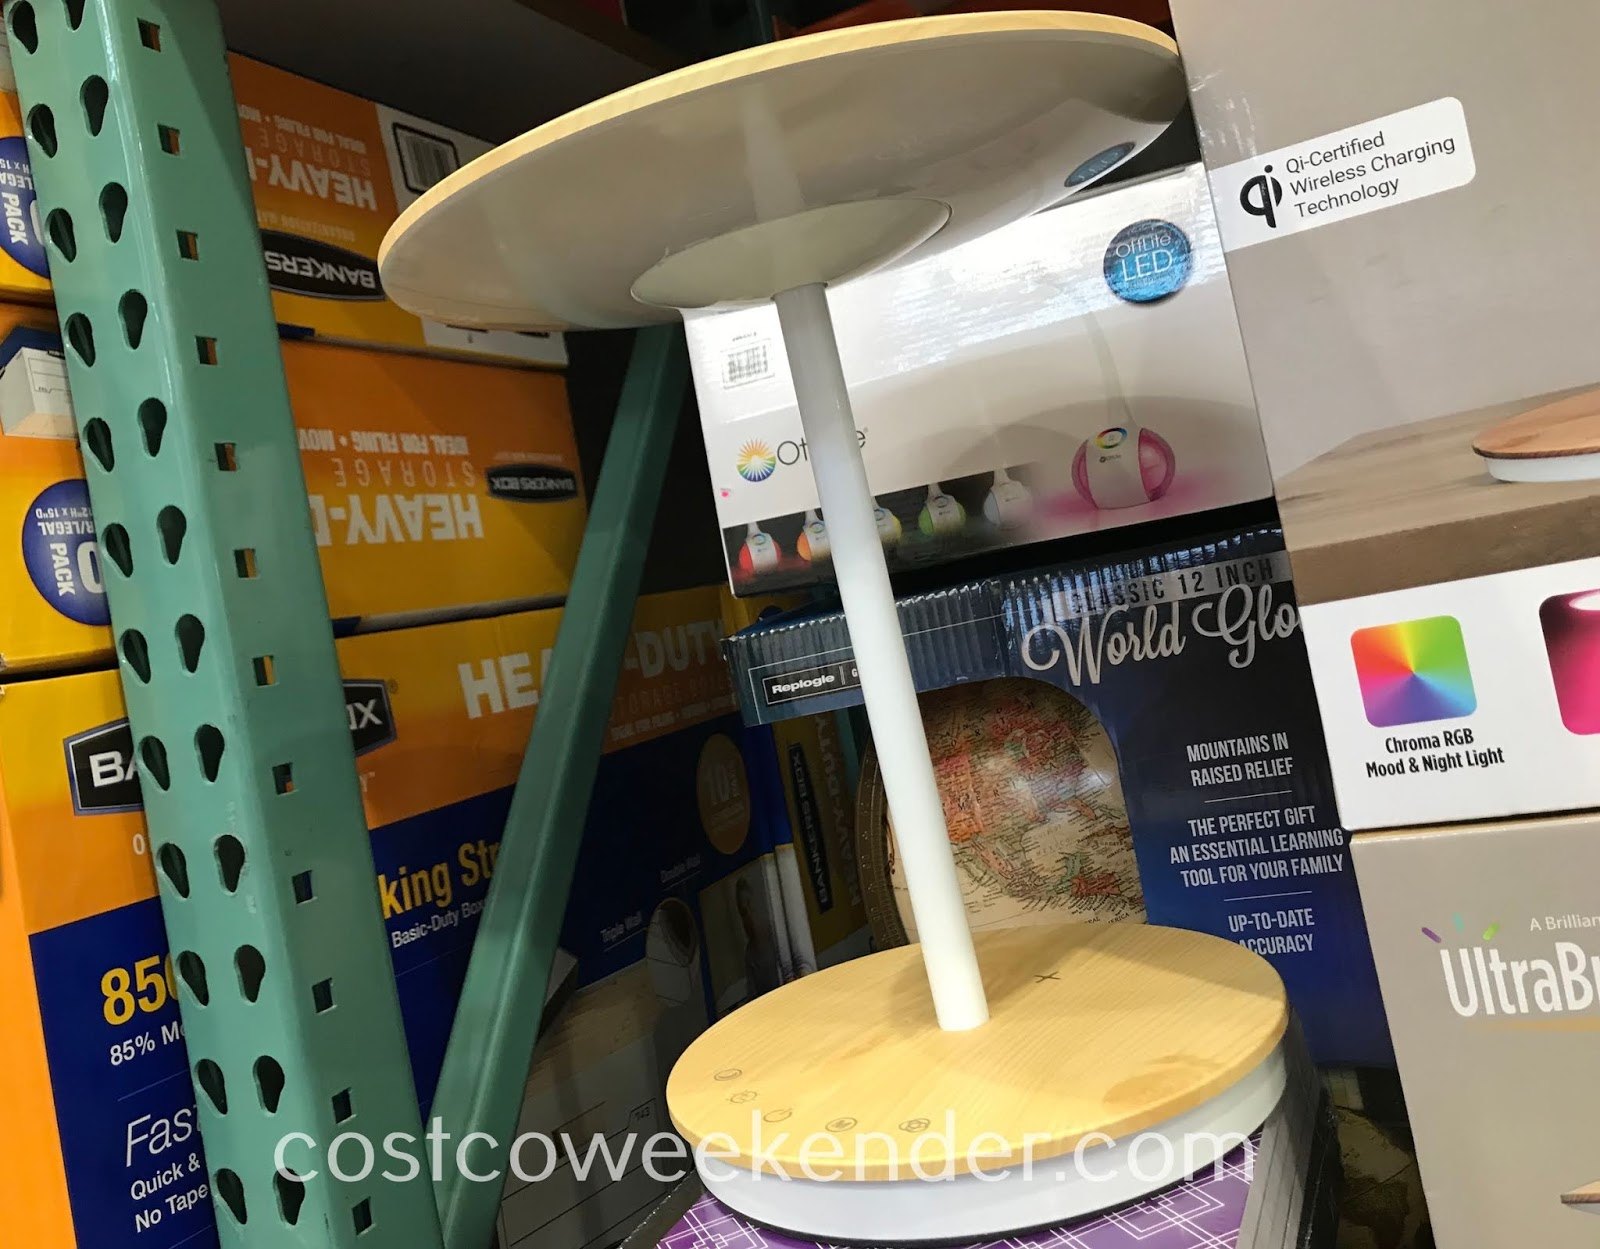 Light up your room or charge your phone with the UltraBrite Dome LED Desk Lamp